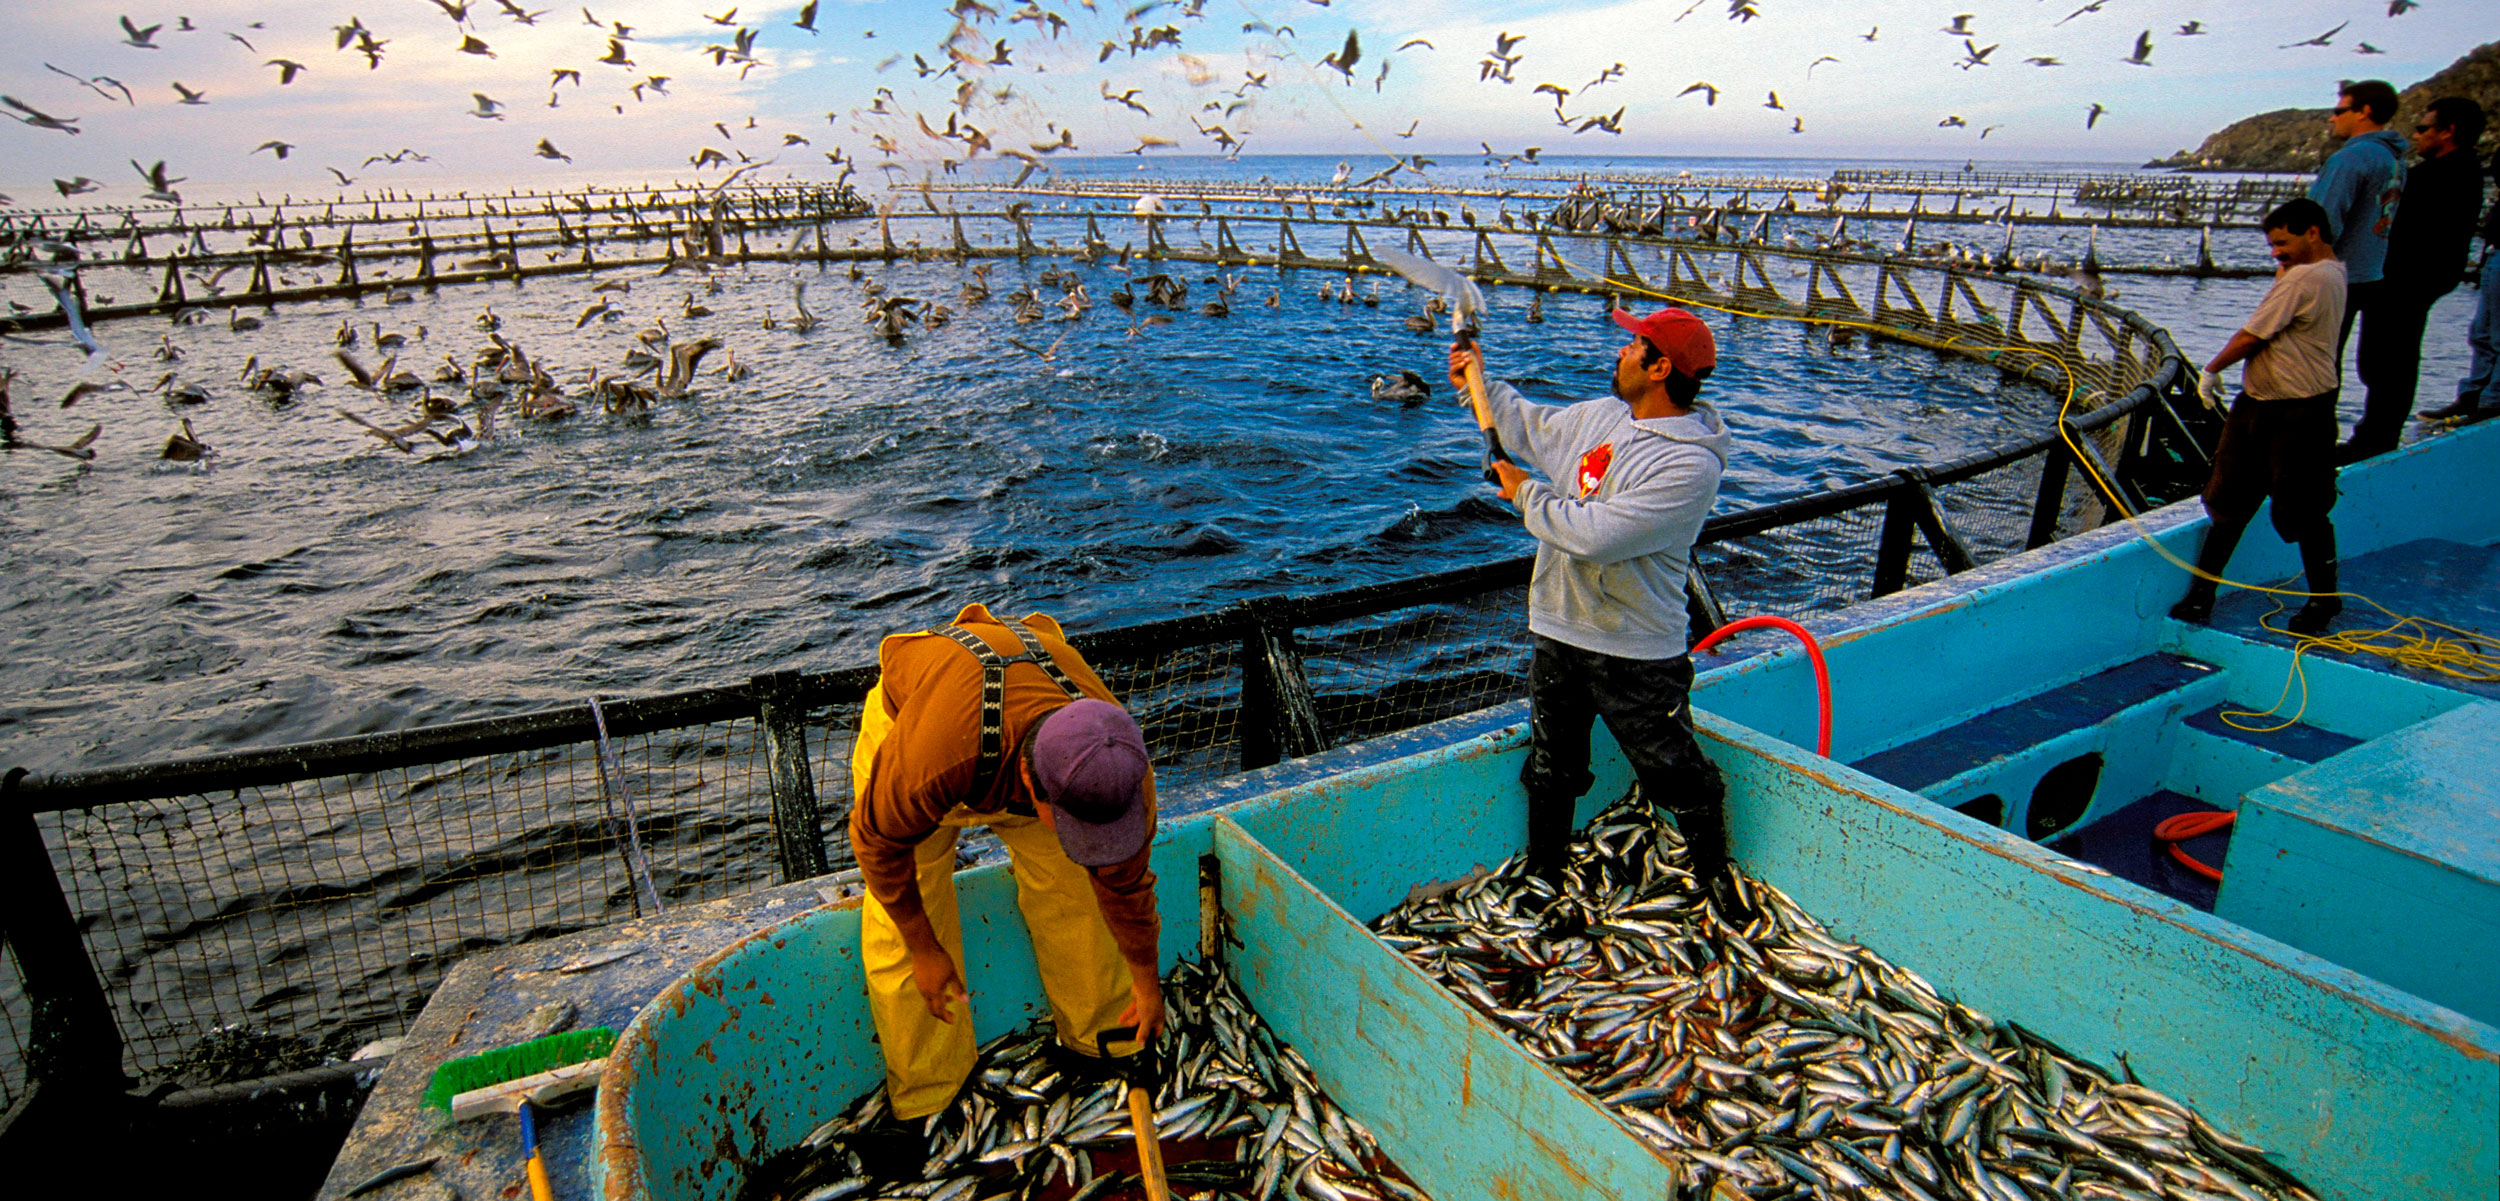 workers feed fish at fish farm